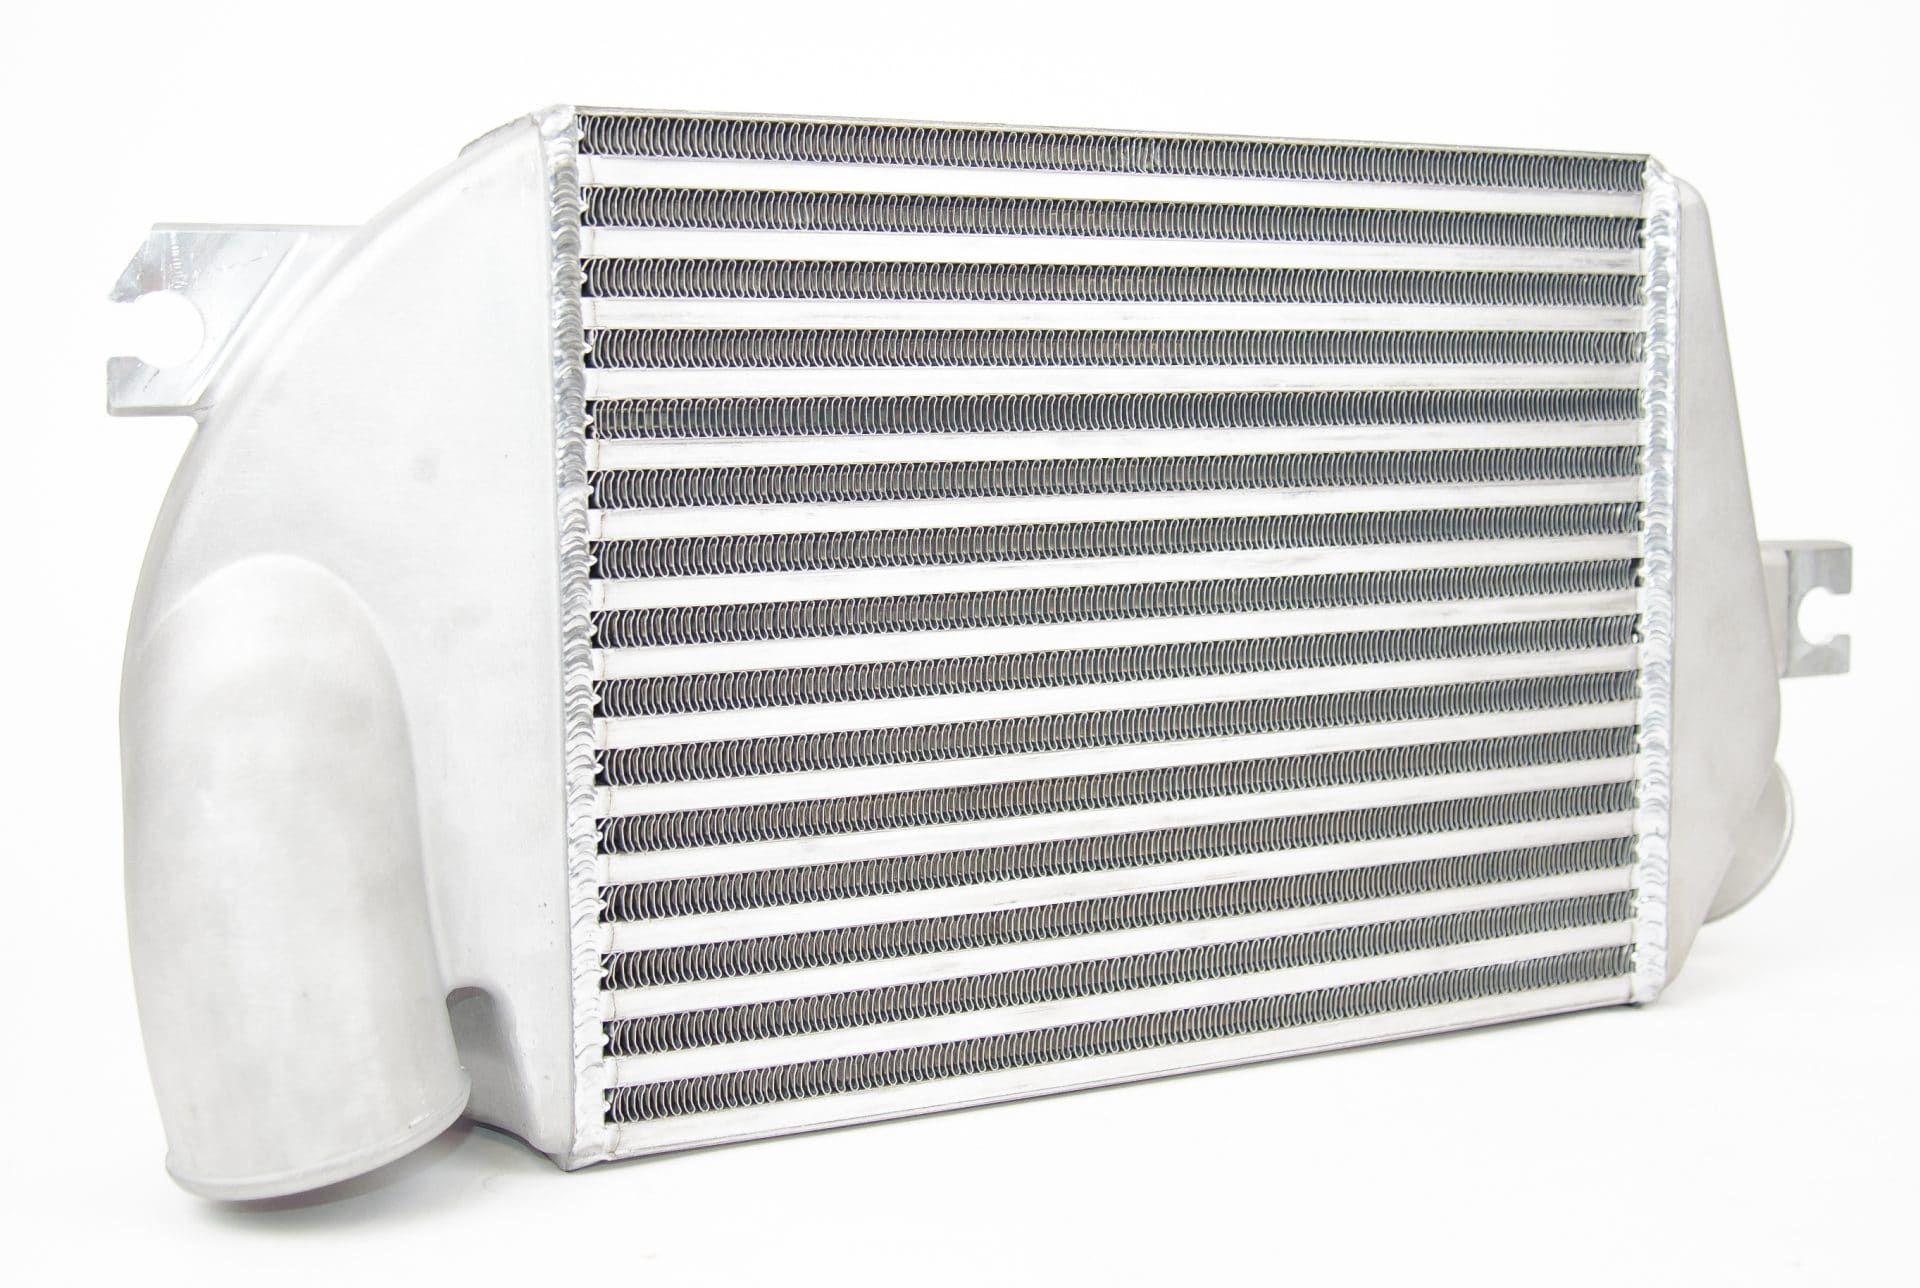 Direct Fit Performance Intercooler Suits Subaru WRX 2.0L 2015+